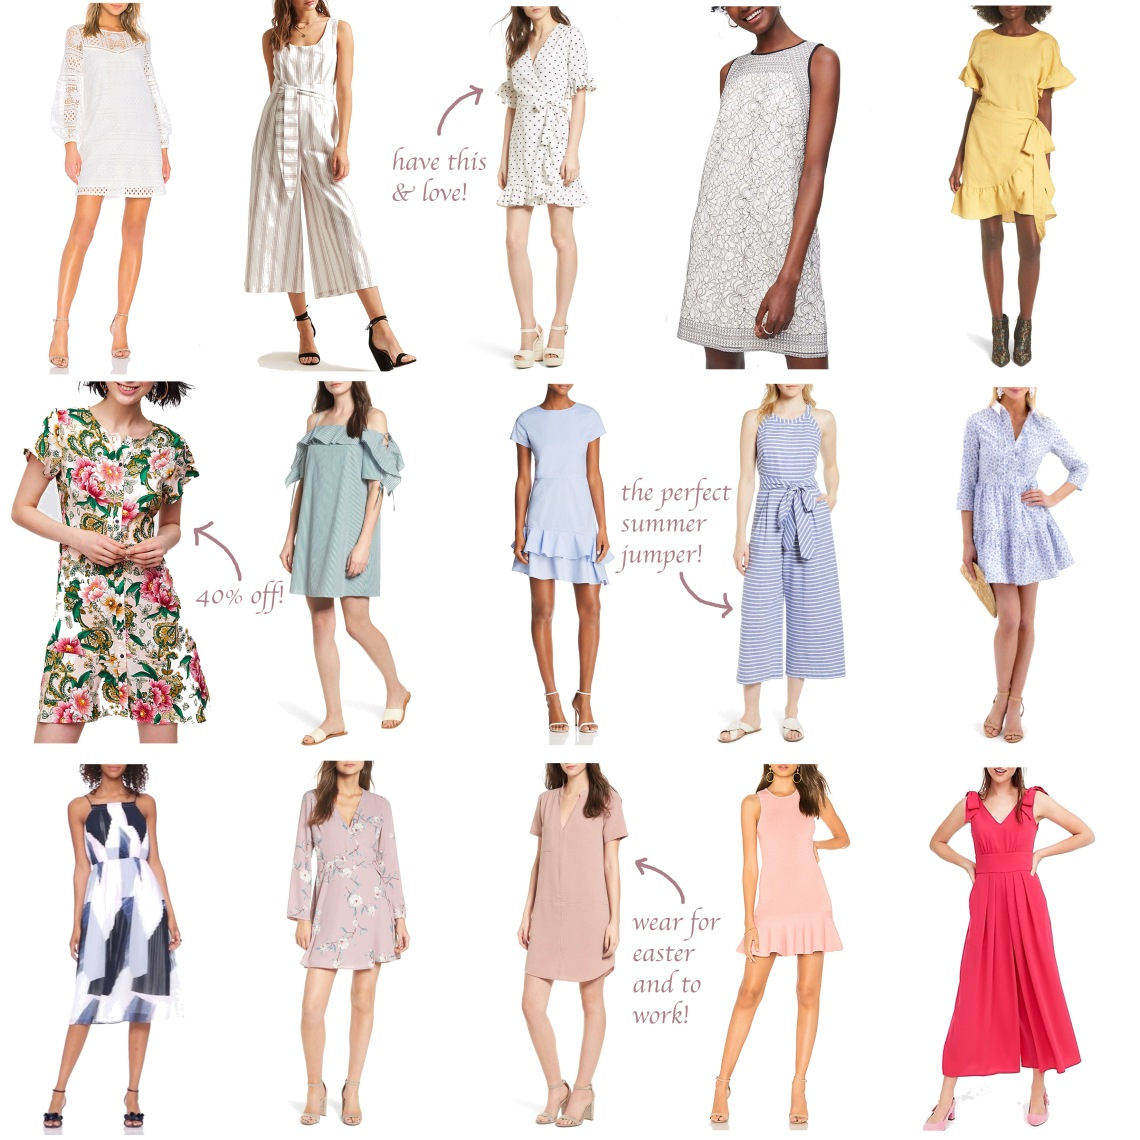 c519d55029cb Easter is right around the corner, and what's better than shopping for a  new dress? A cute dress on sale! I'd love to know your favorites,  especially if you ...